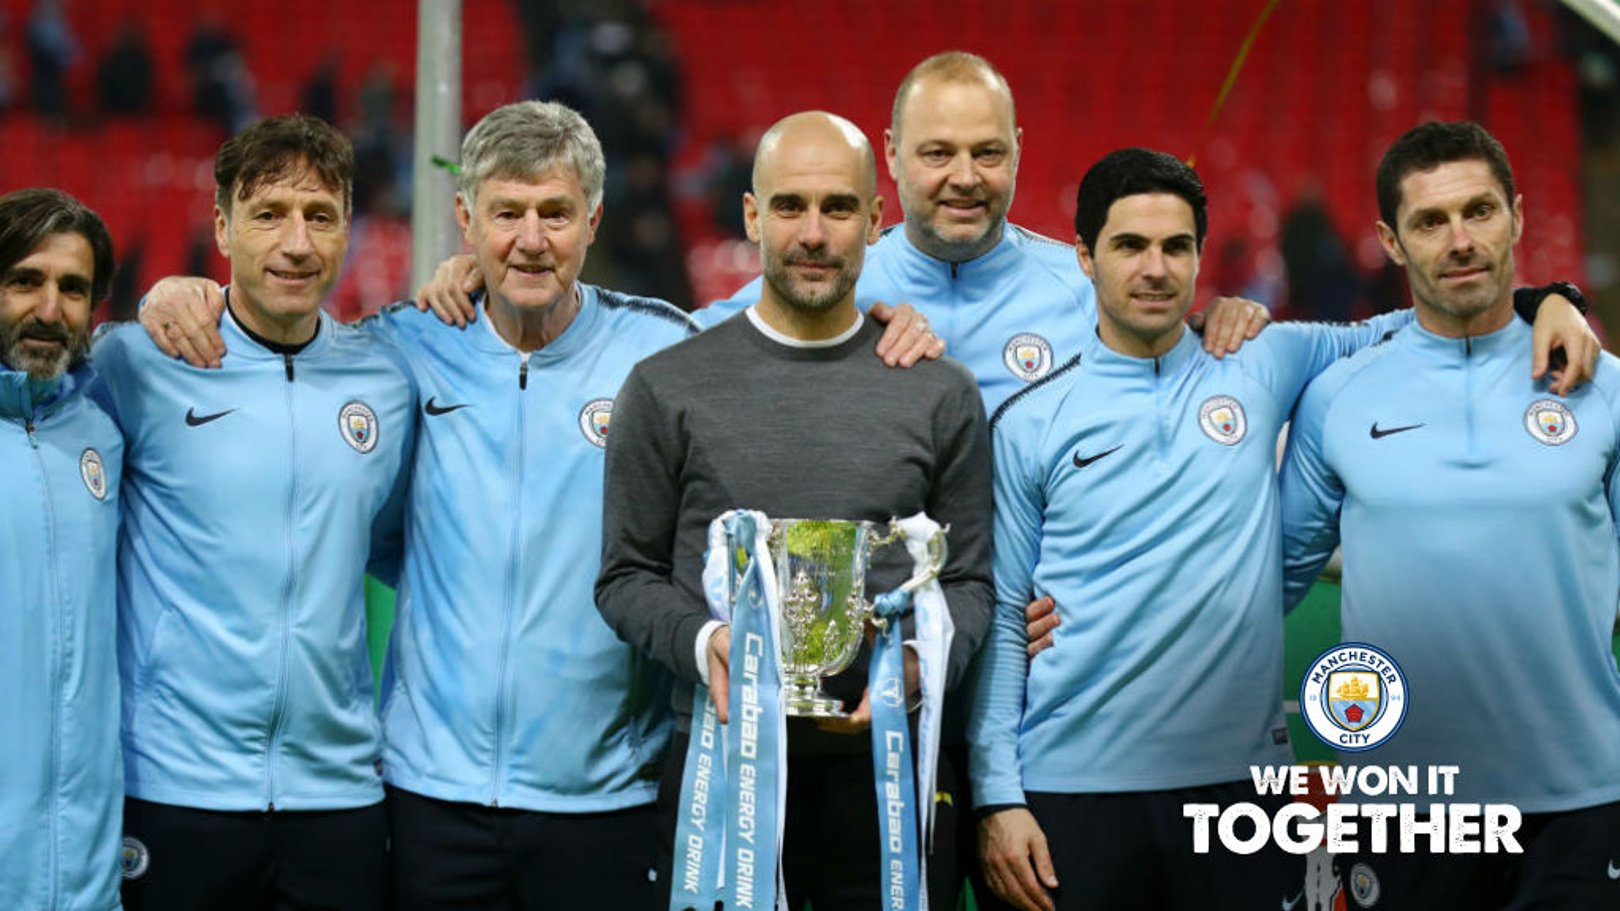 Manchester City: Carabao Cup winners 2018/19!